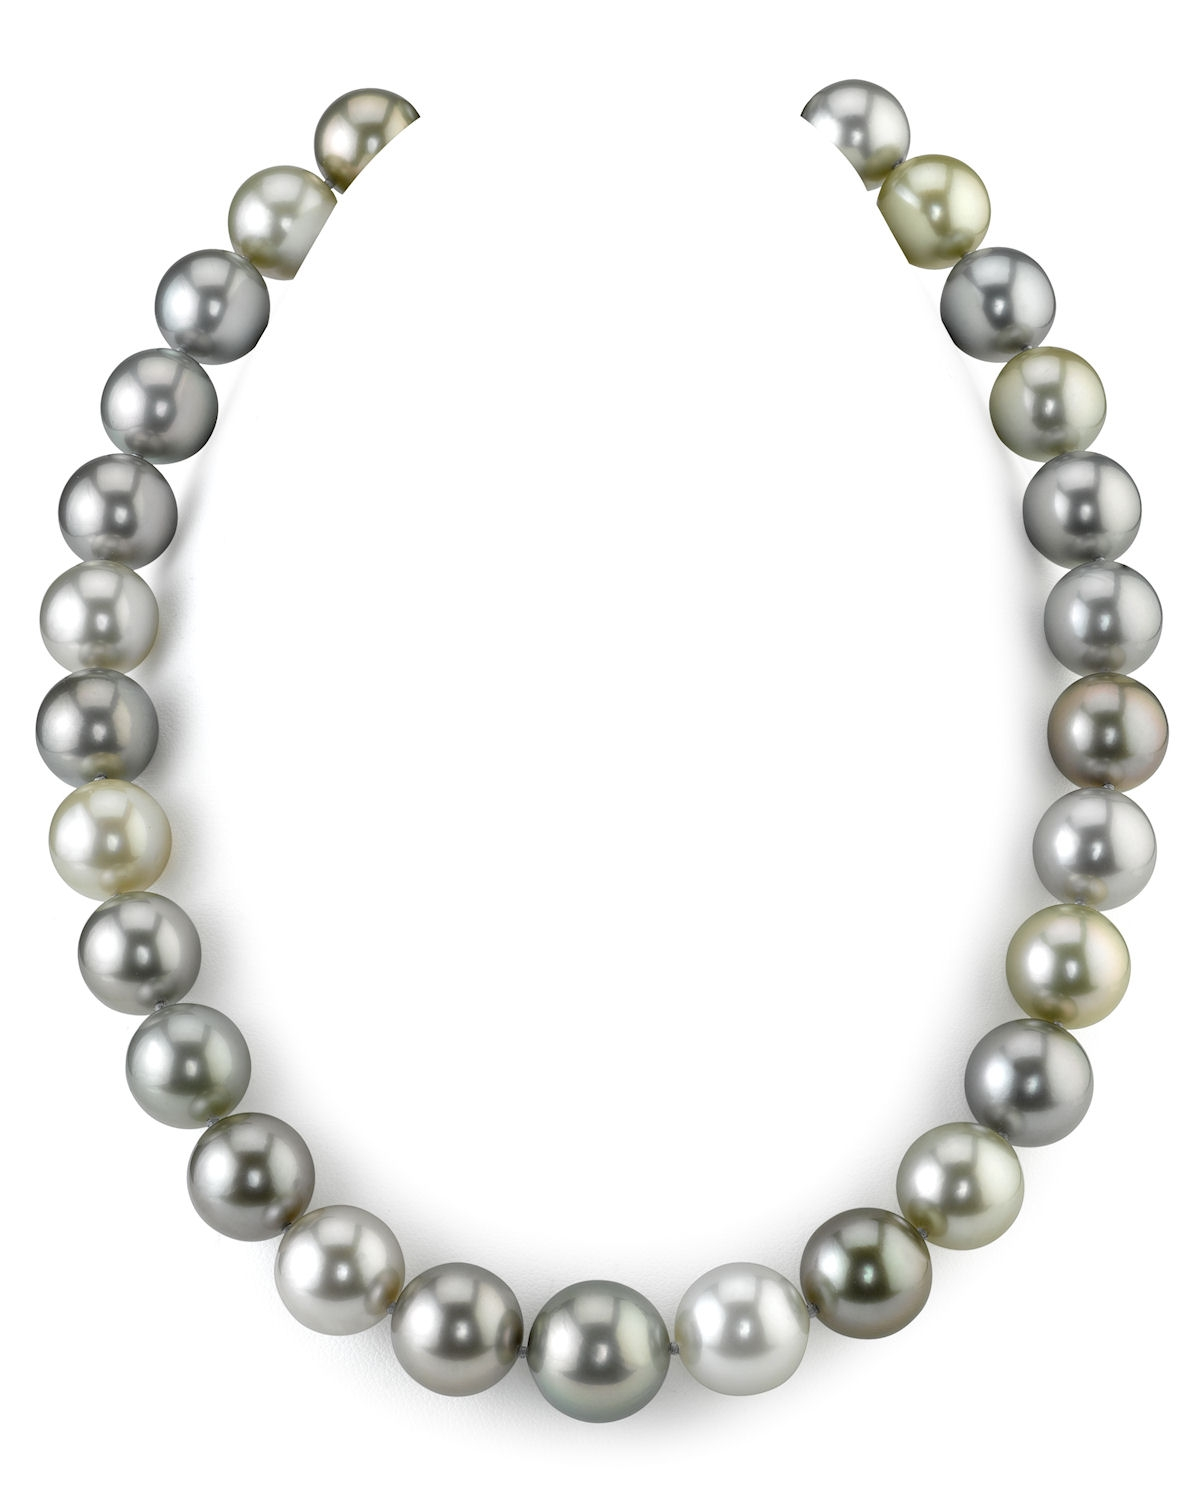 13-14.9mm Tahitian Pearl Multicolor Necklace - AAAA Quality